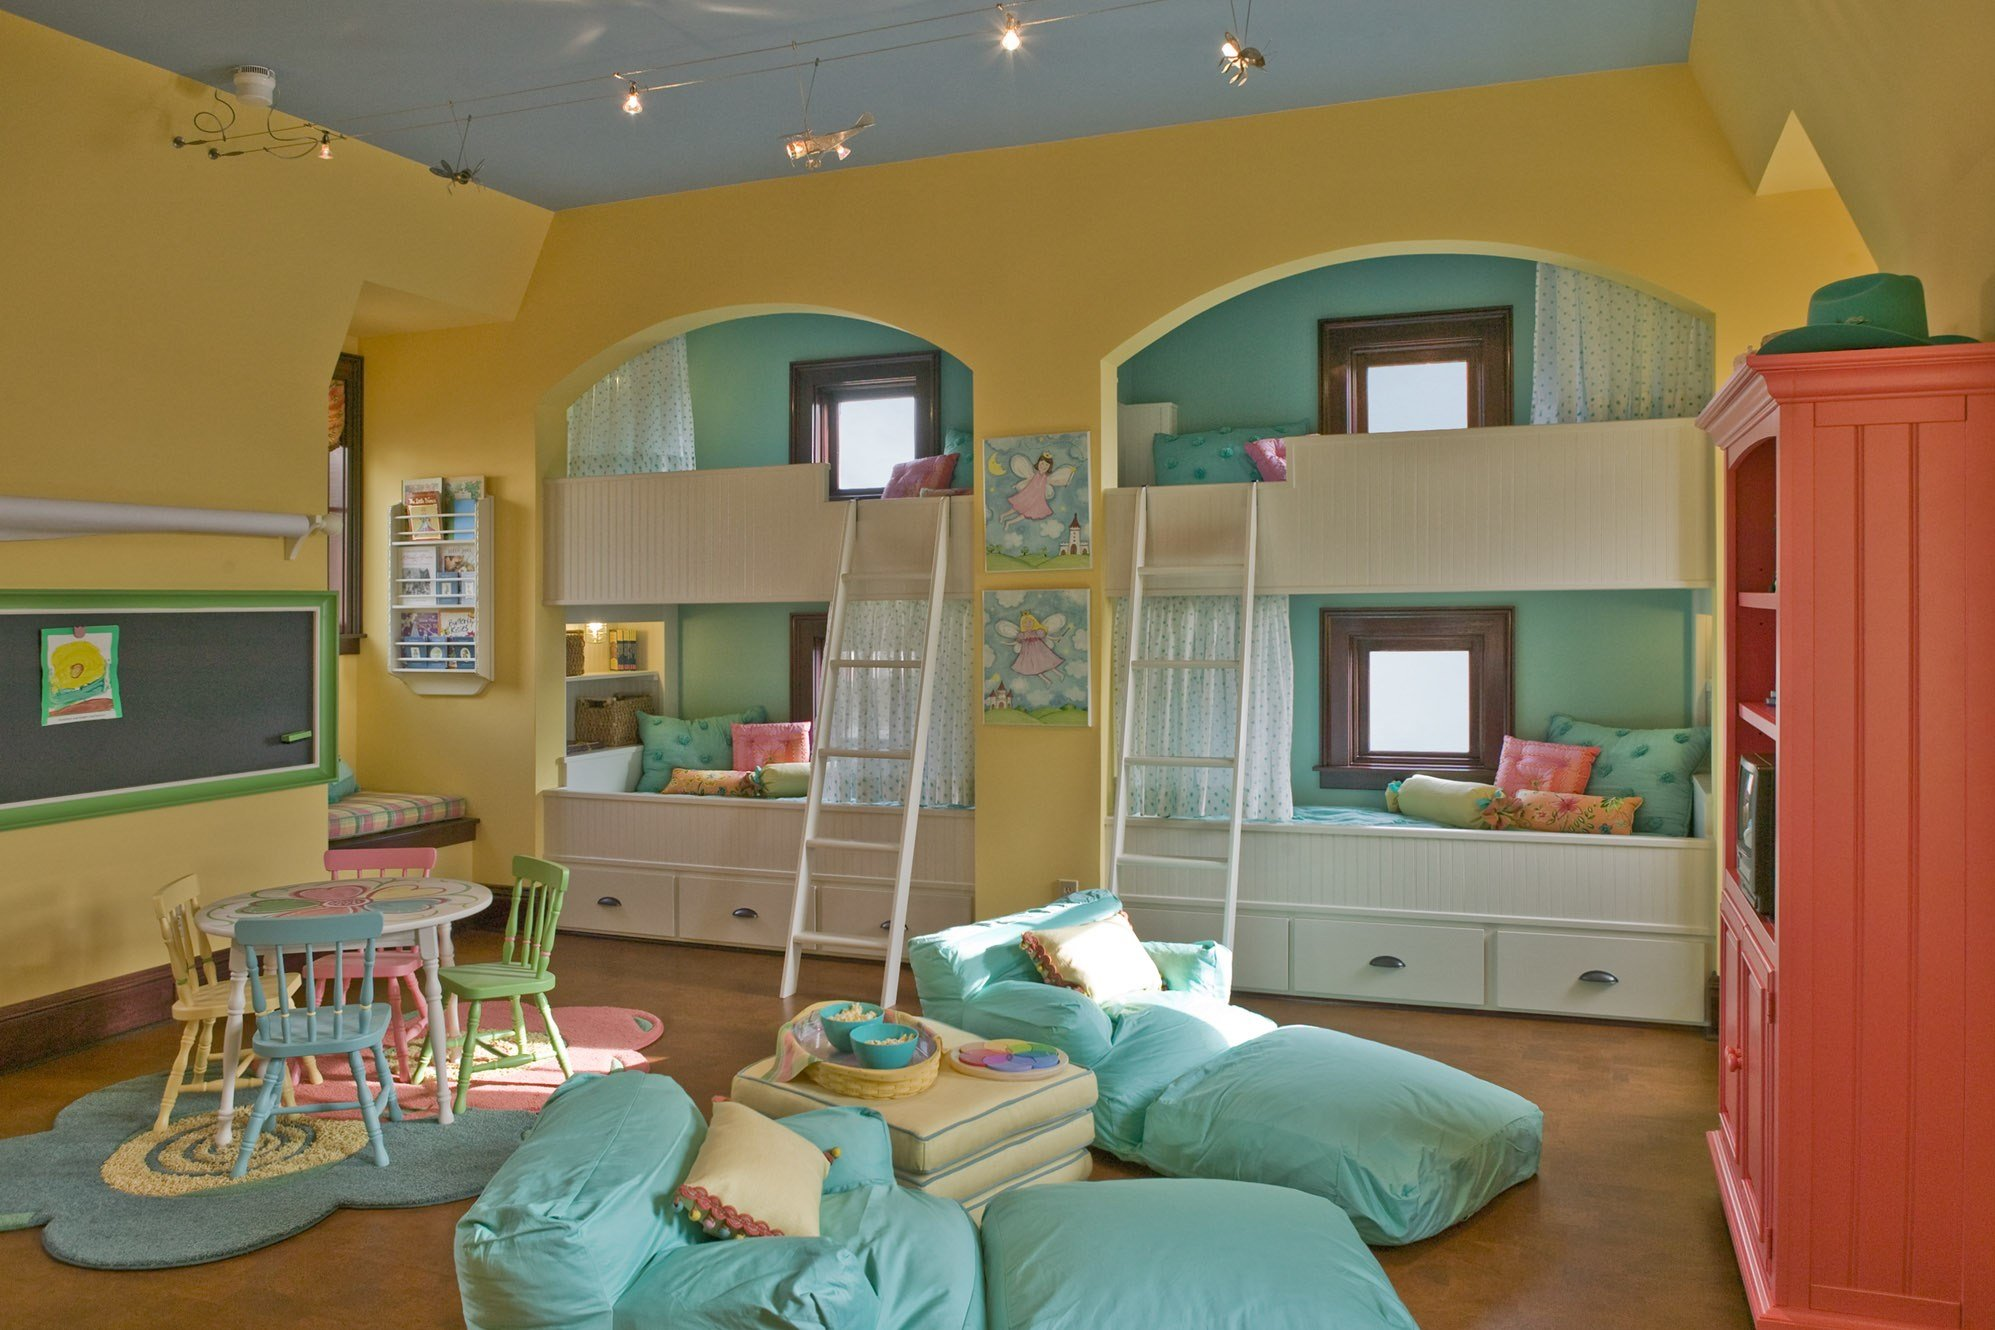 Best The Abc's Of Decorating…K Is For Kid's Rooms Decorating Den Interiors Blog – Decorating Tips With Pictures